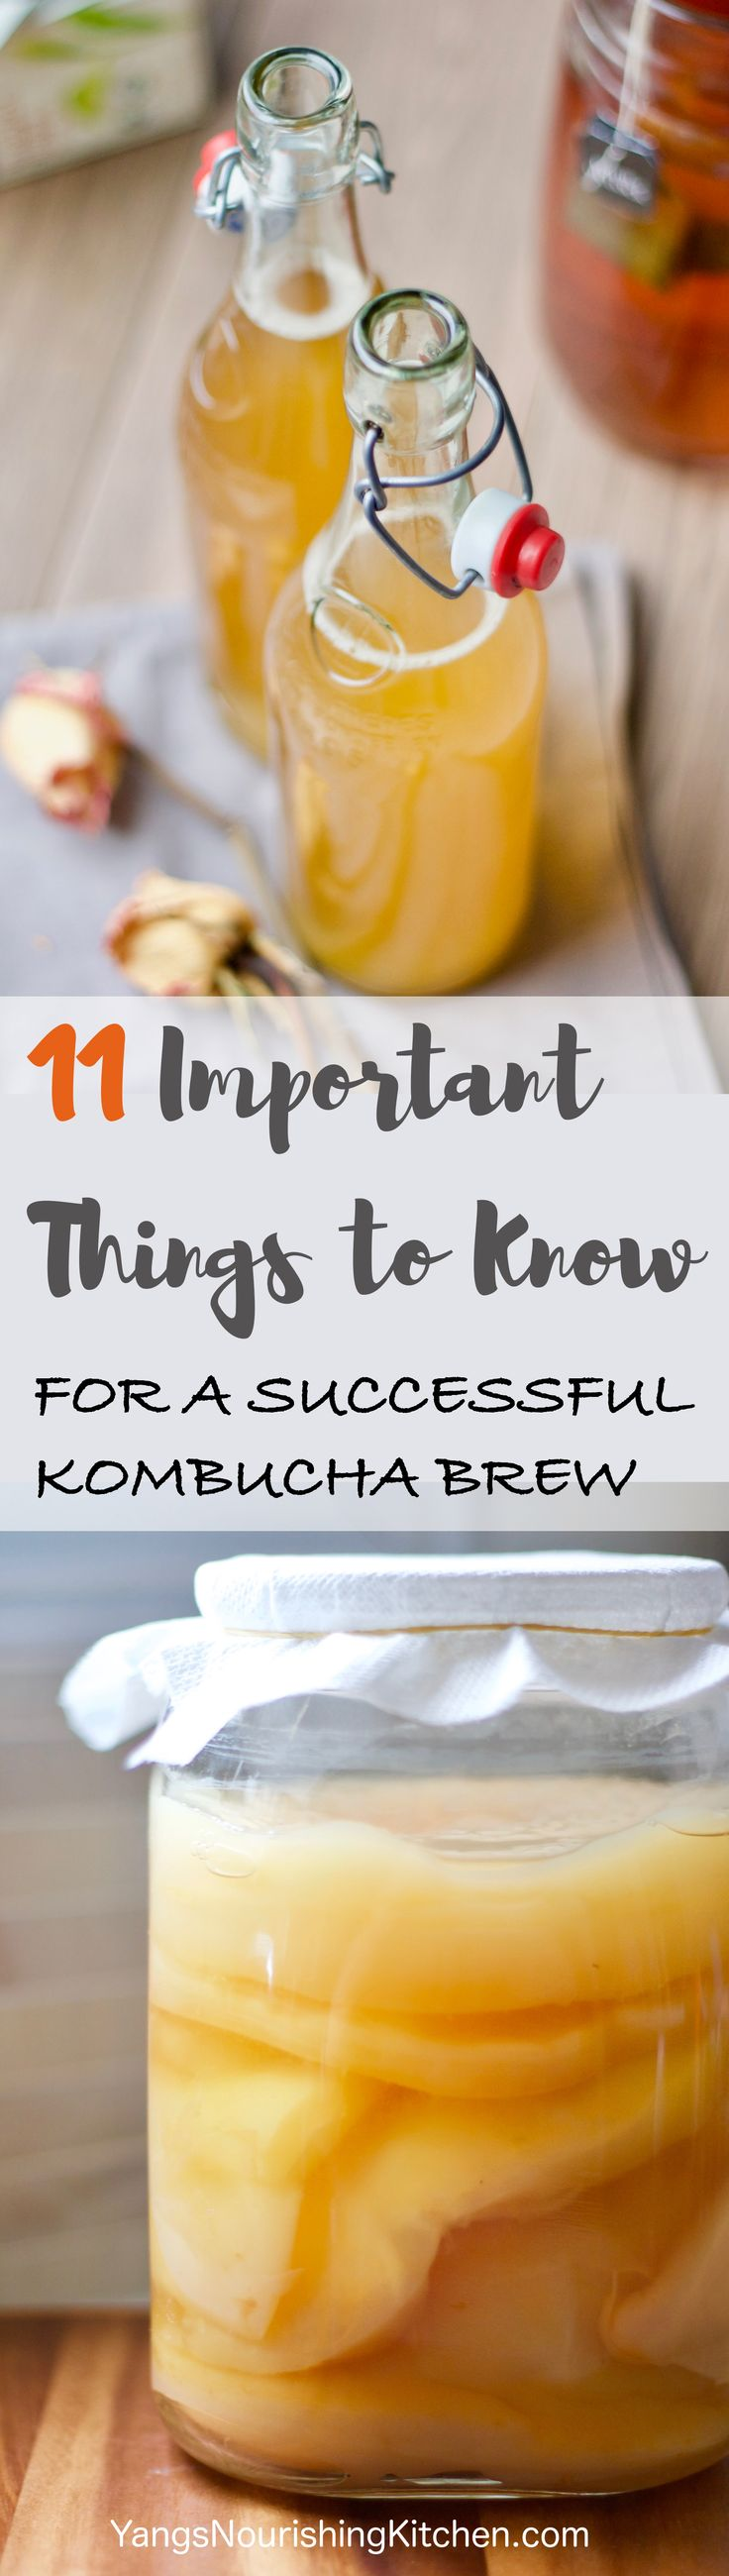 Kombucha Series Part #1: 11 Important things to know for a successful kombucha brew. Let's dive a little deeper - this article covers a list of important questions and answers to make kombucha 1st fermentation as successful as possible. Also included a basic recipe and instruction for those who are just starting out from the beginning.